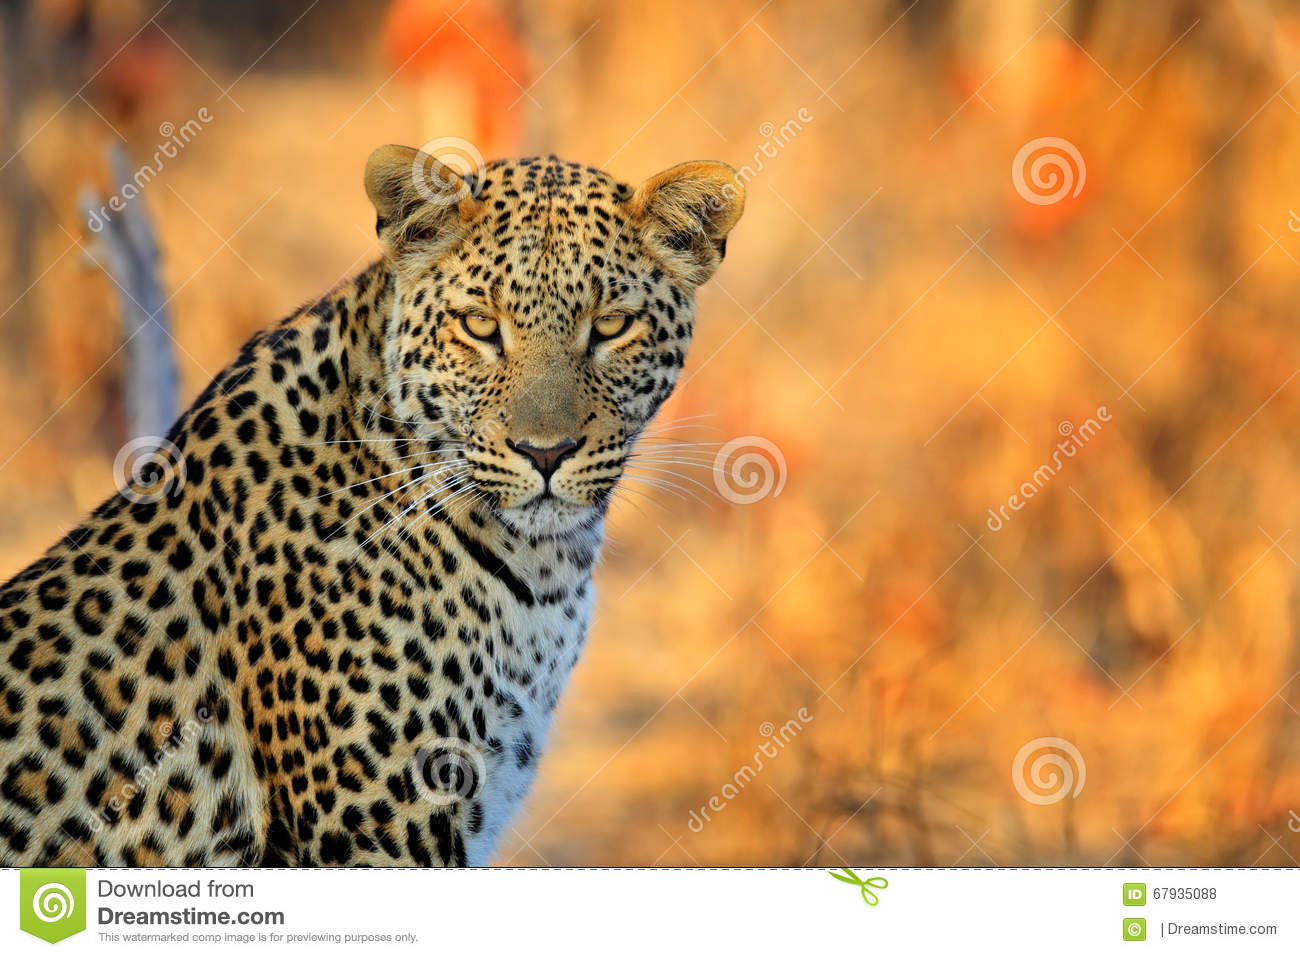 African Leopard, Panthera pardus shortidgei, Hwange National Park, Zimbabwe, portrait portrait eye to eye with nice orange backrou